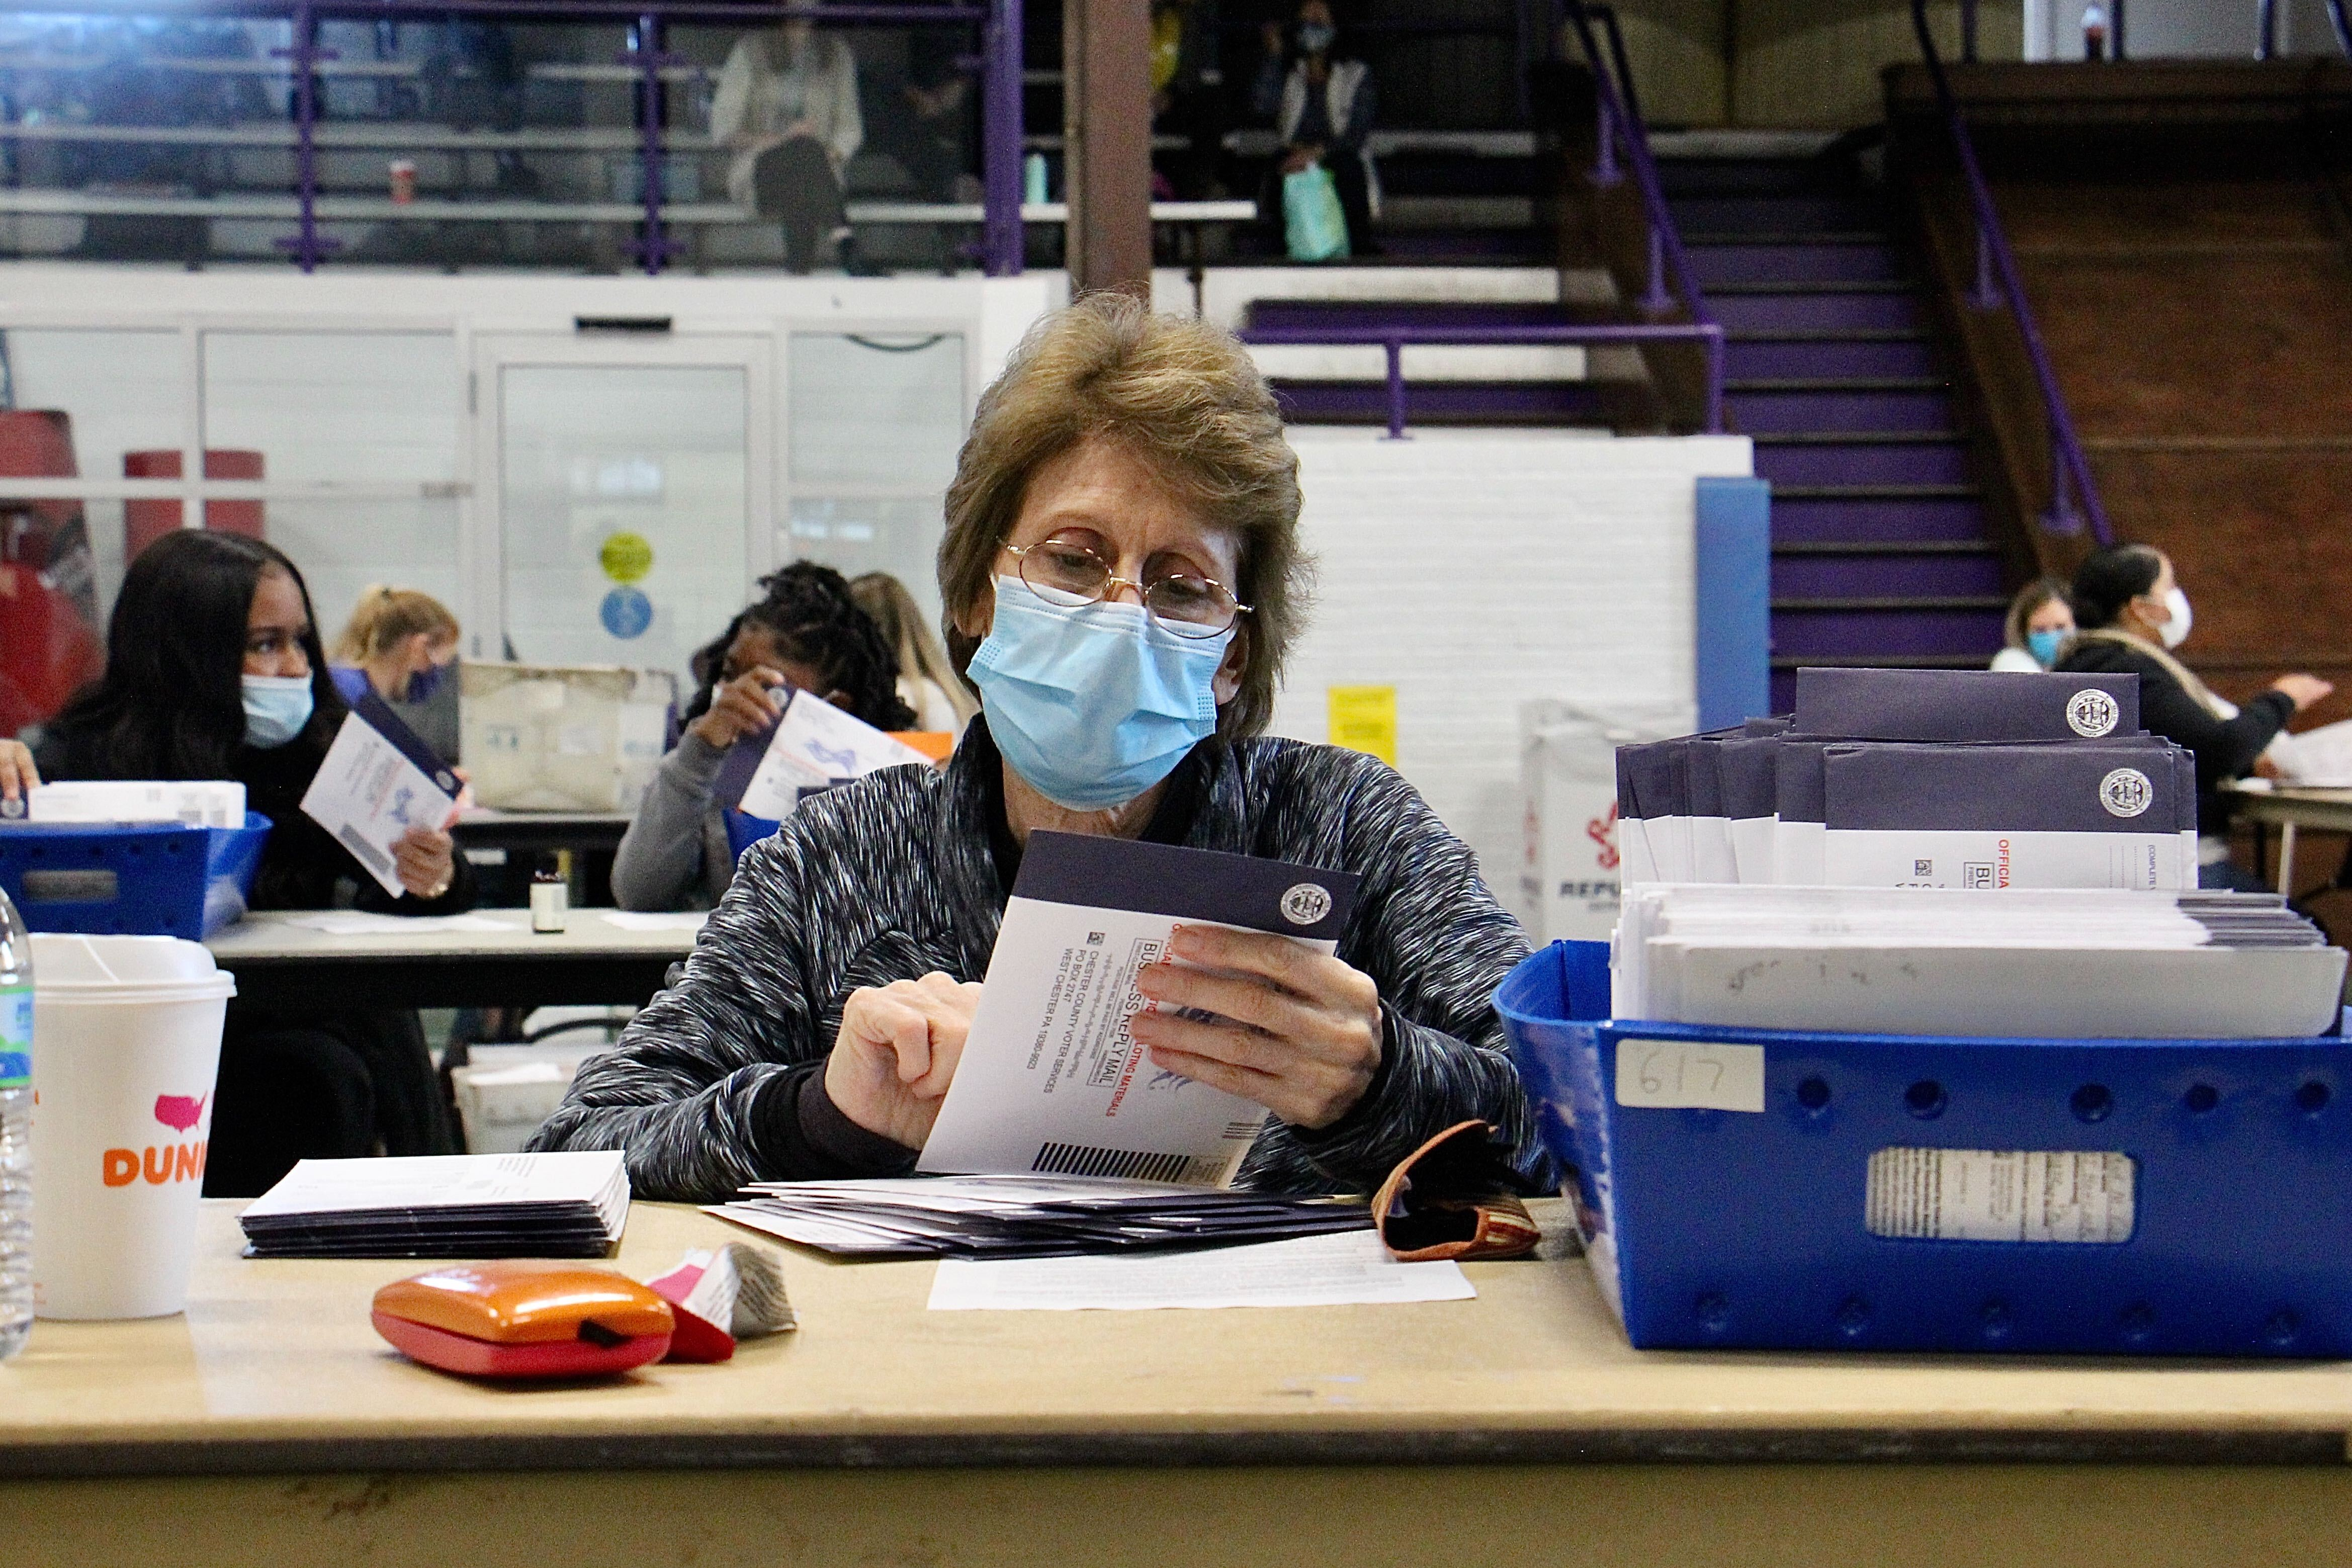 Election worker Patricia Masi inspects mail-in ballots at the West Chester University gym